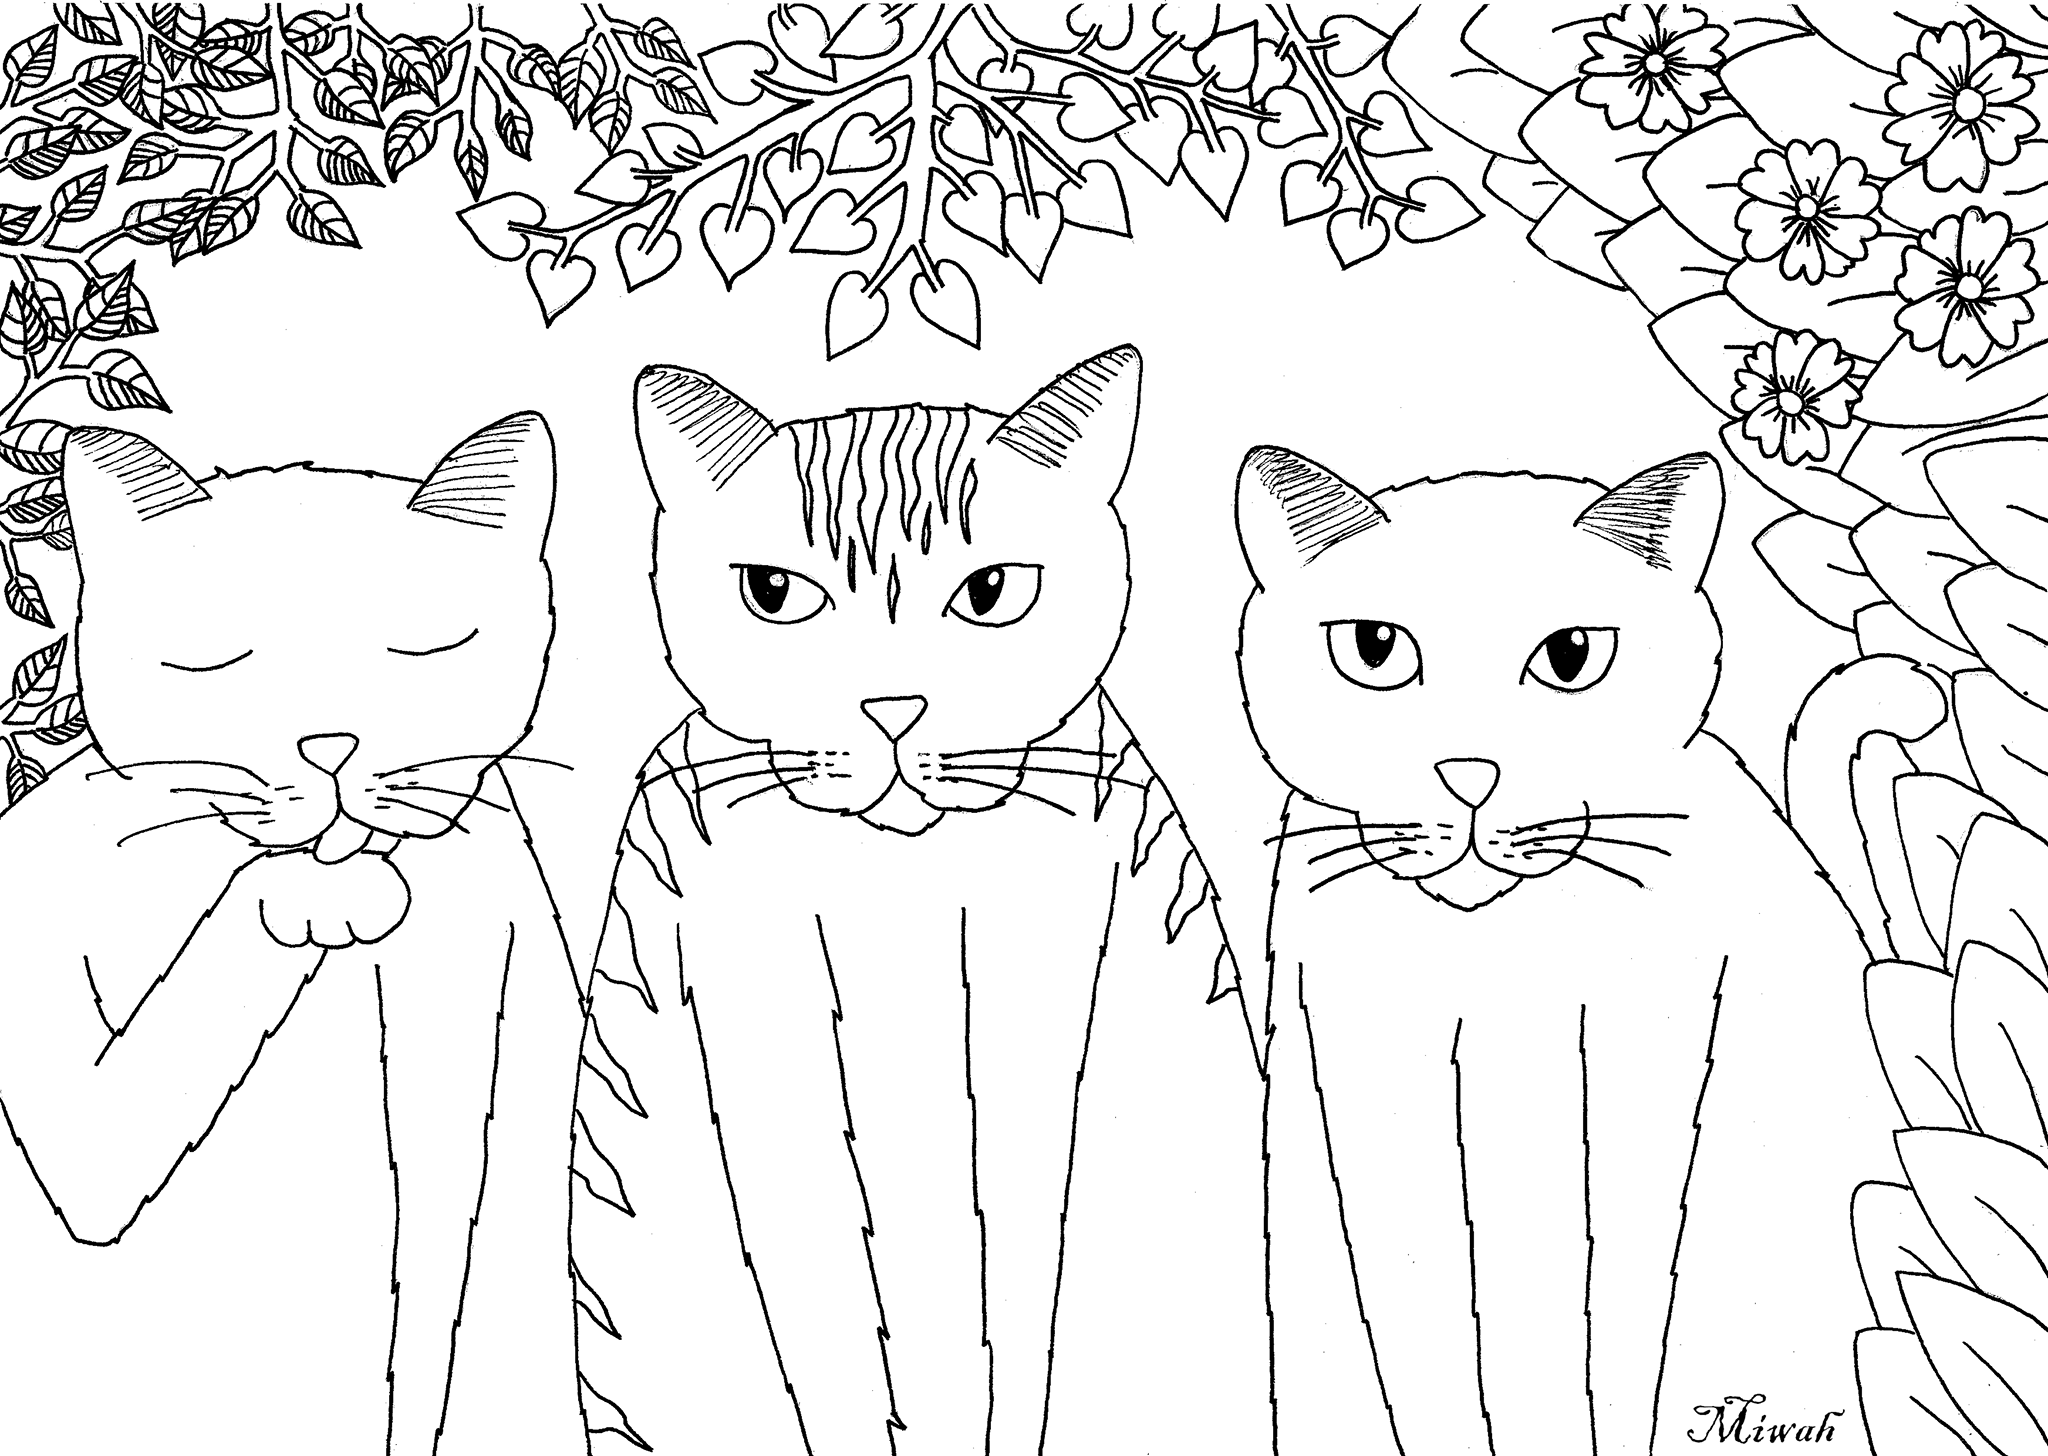 Tree little funny cats - Cats Adult Coloring Pages